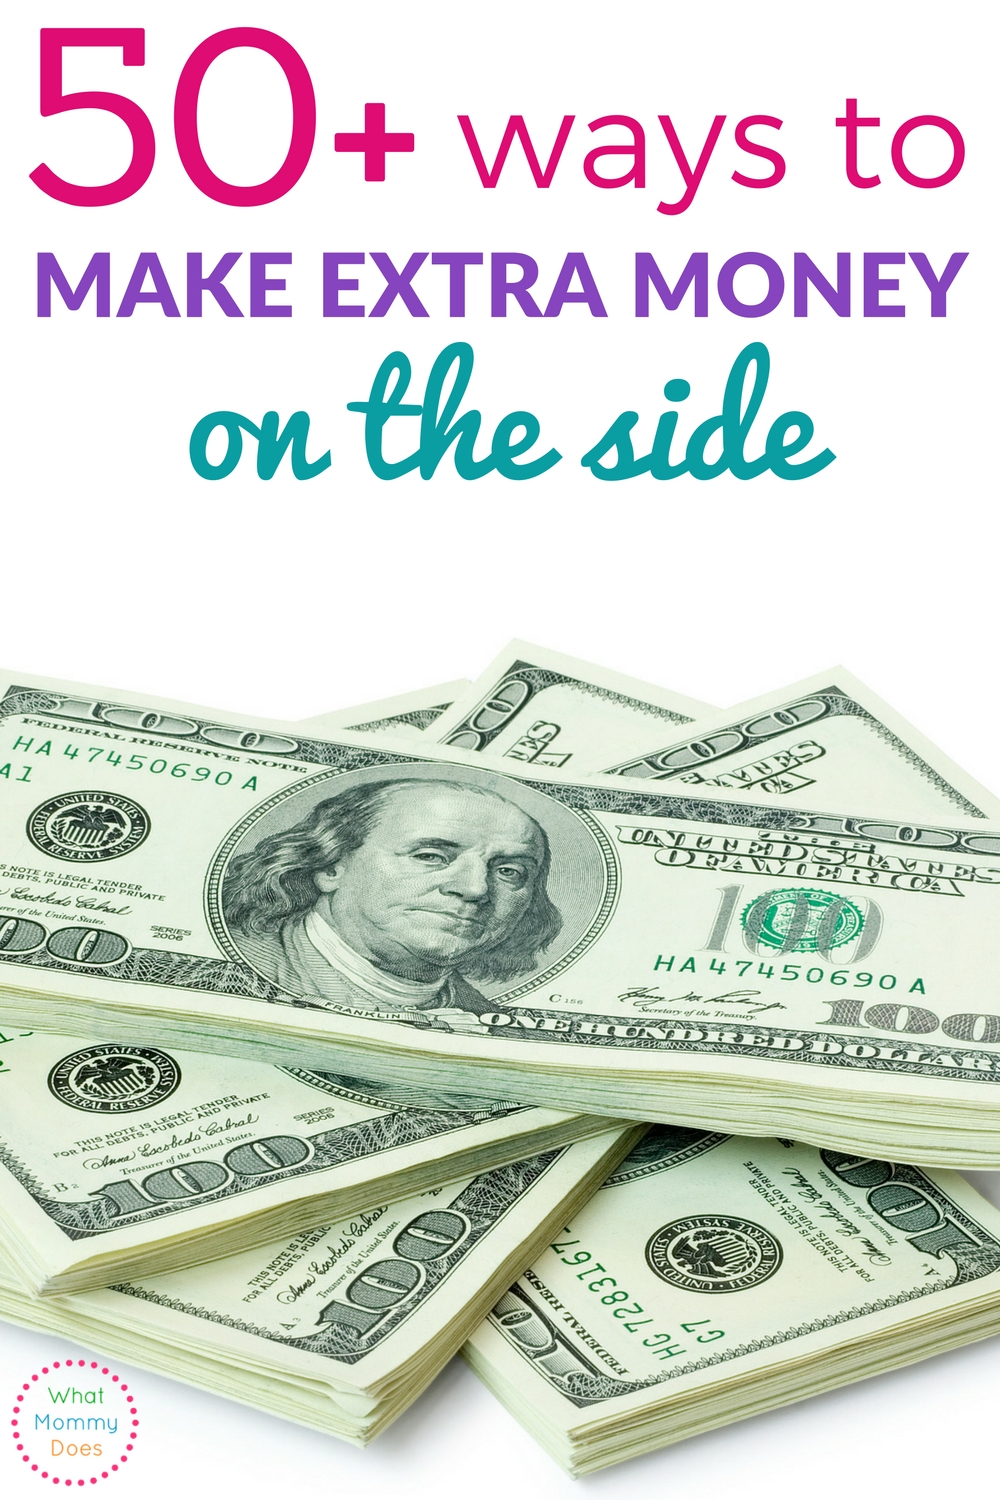 Discover over 50 ideas to make extra money on the side. Many of them allow you to make money from home!